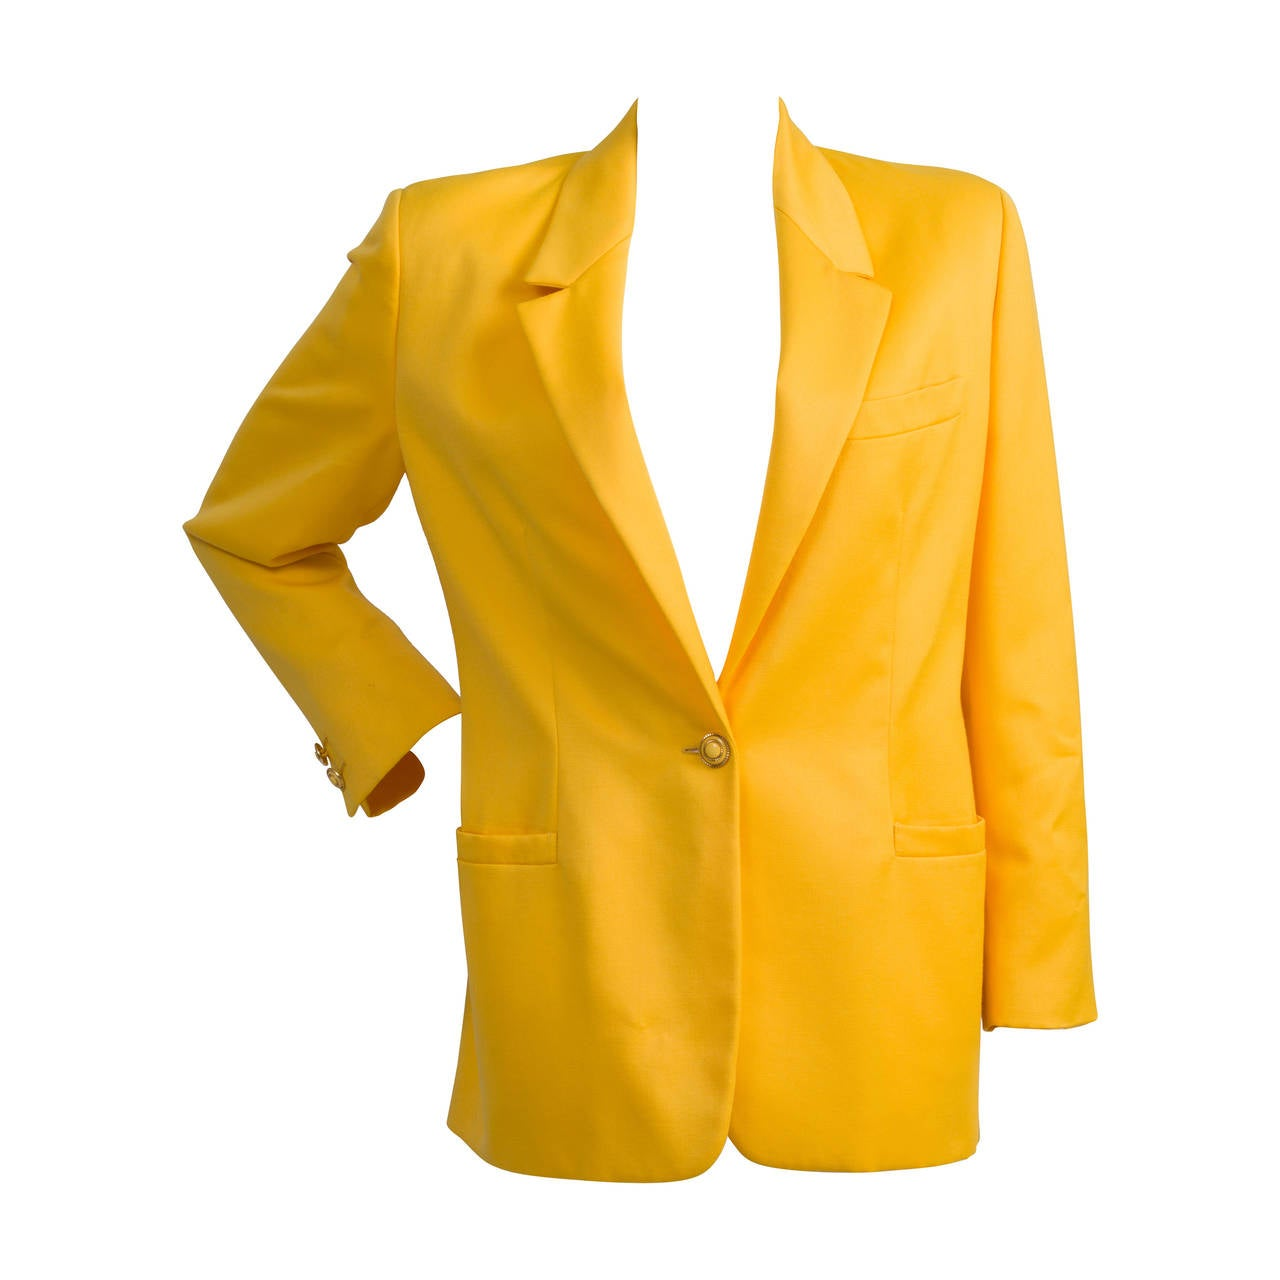 1990s Versus by Gianni Versace yellow jacket